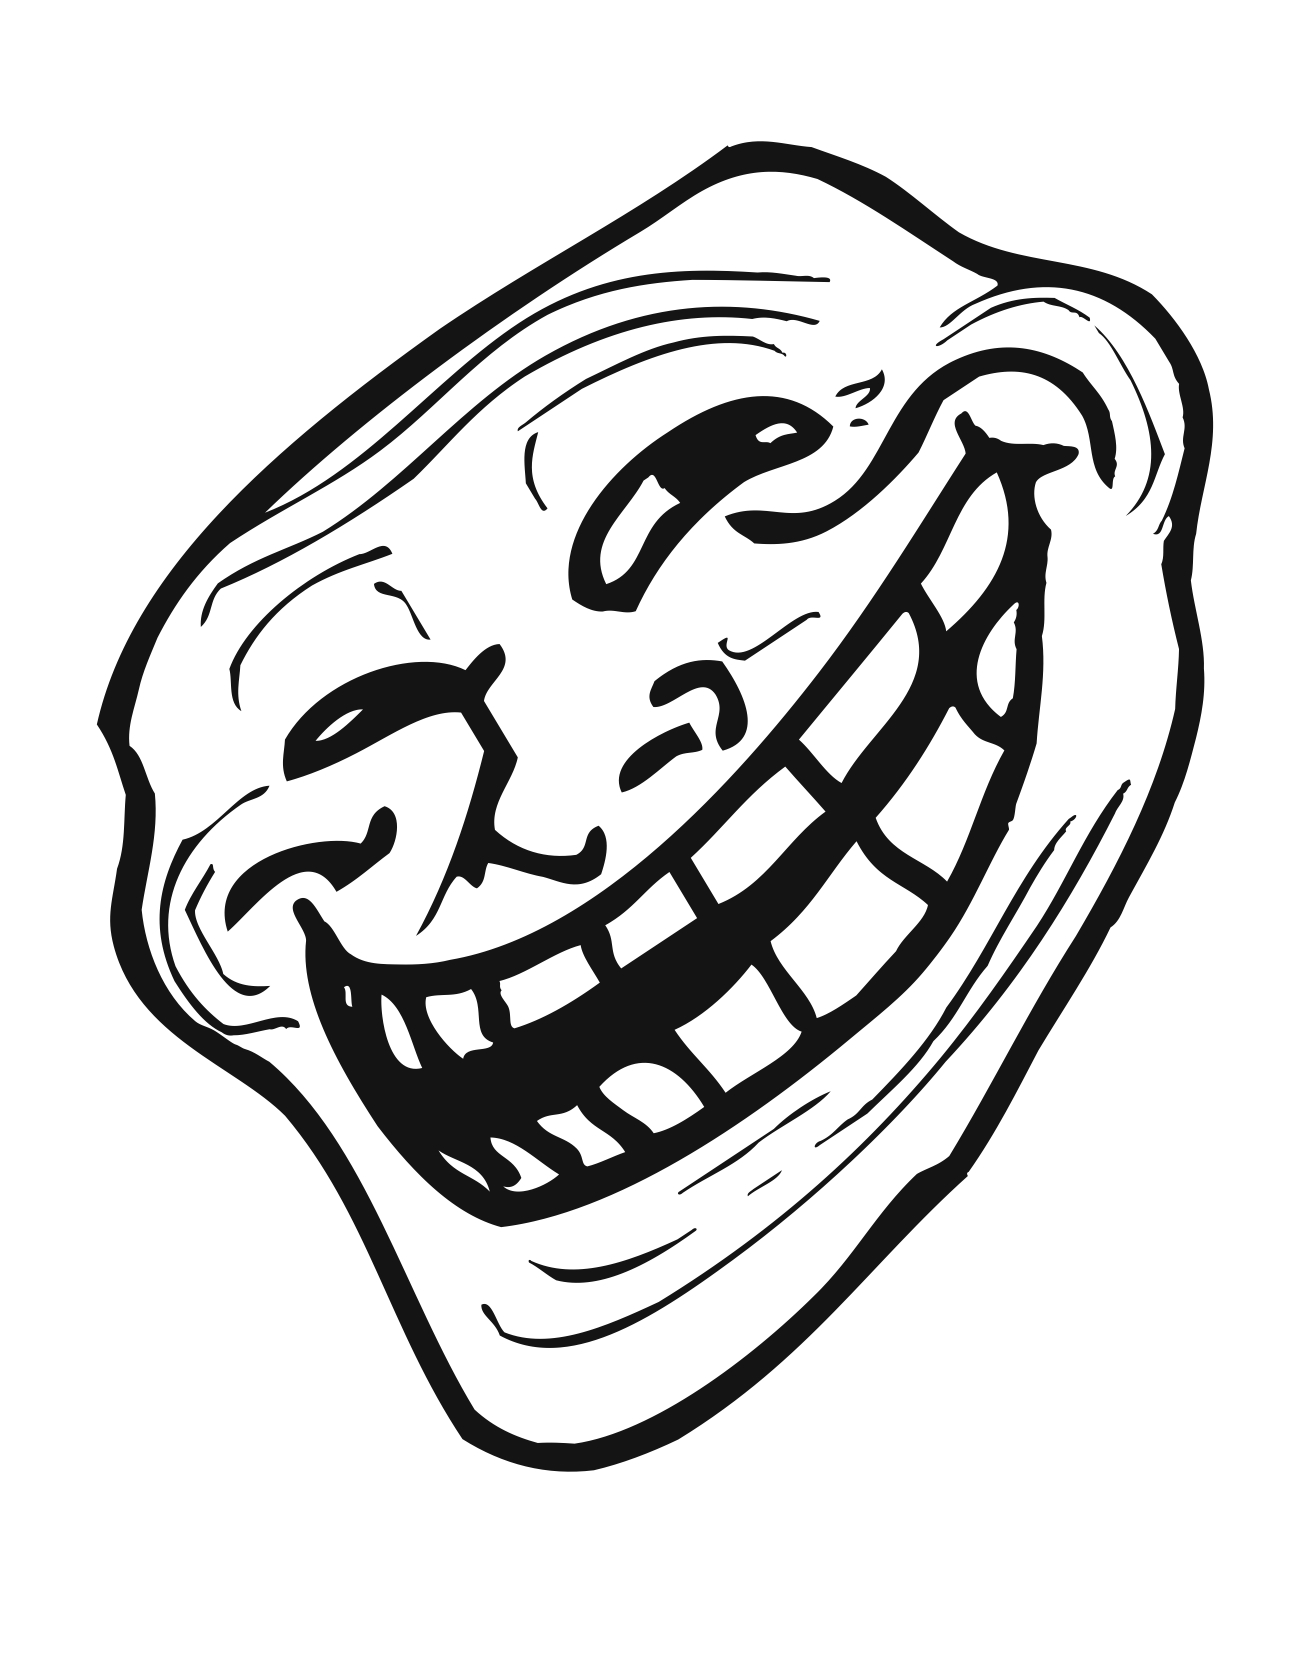 Trollface Troll Face Png Free Transparent Png Download Pngkey